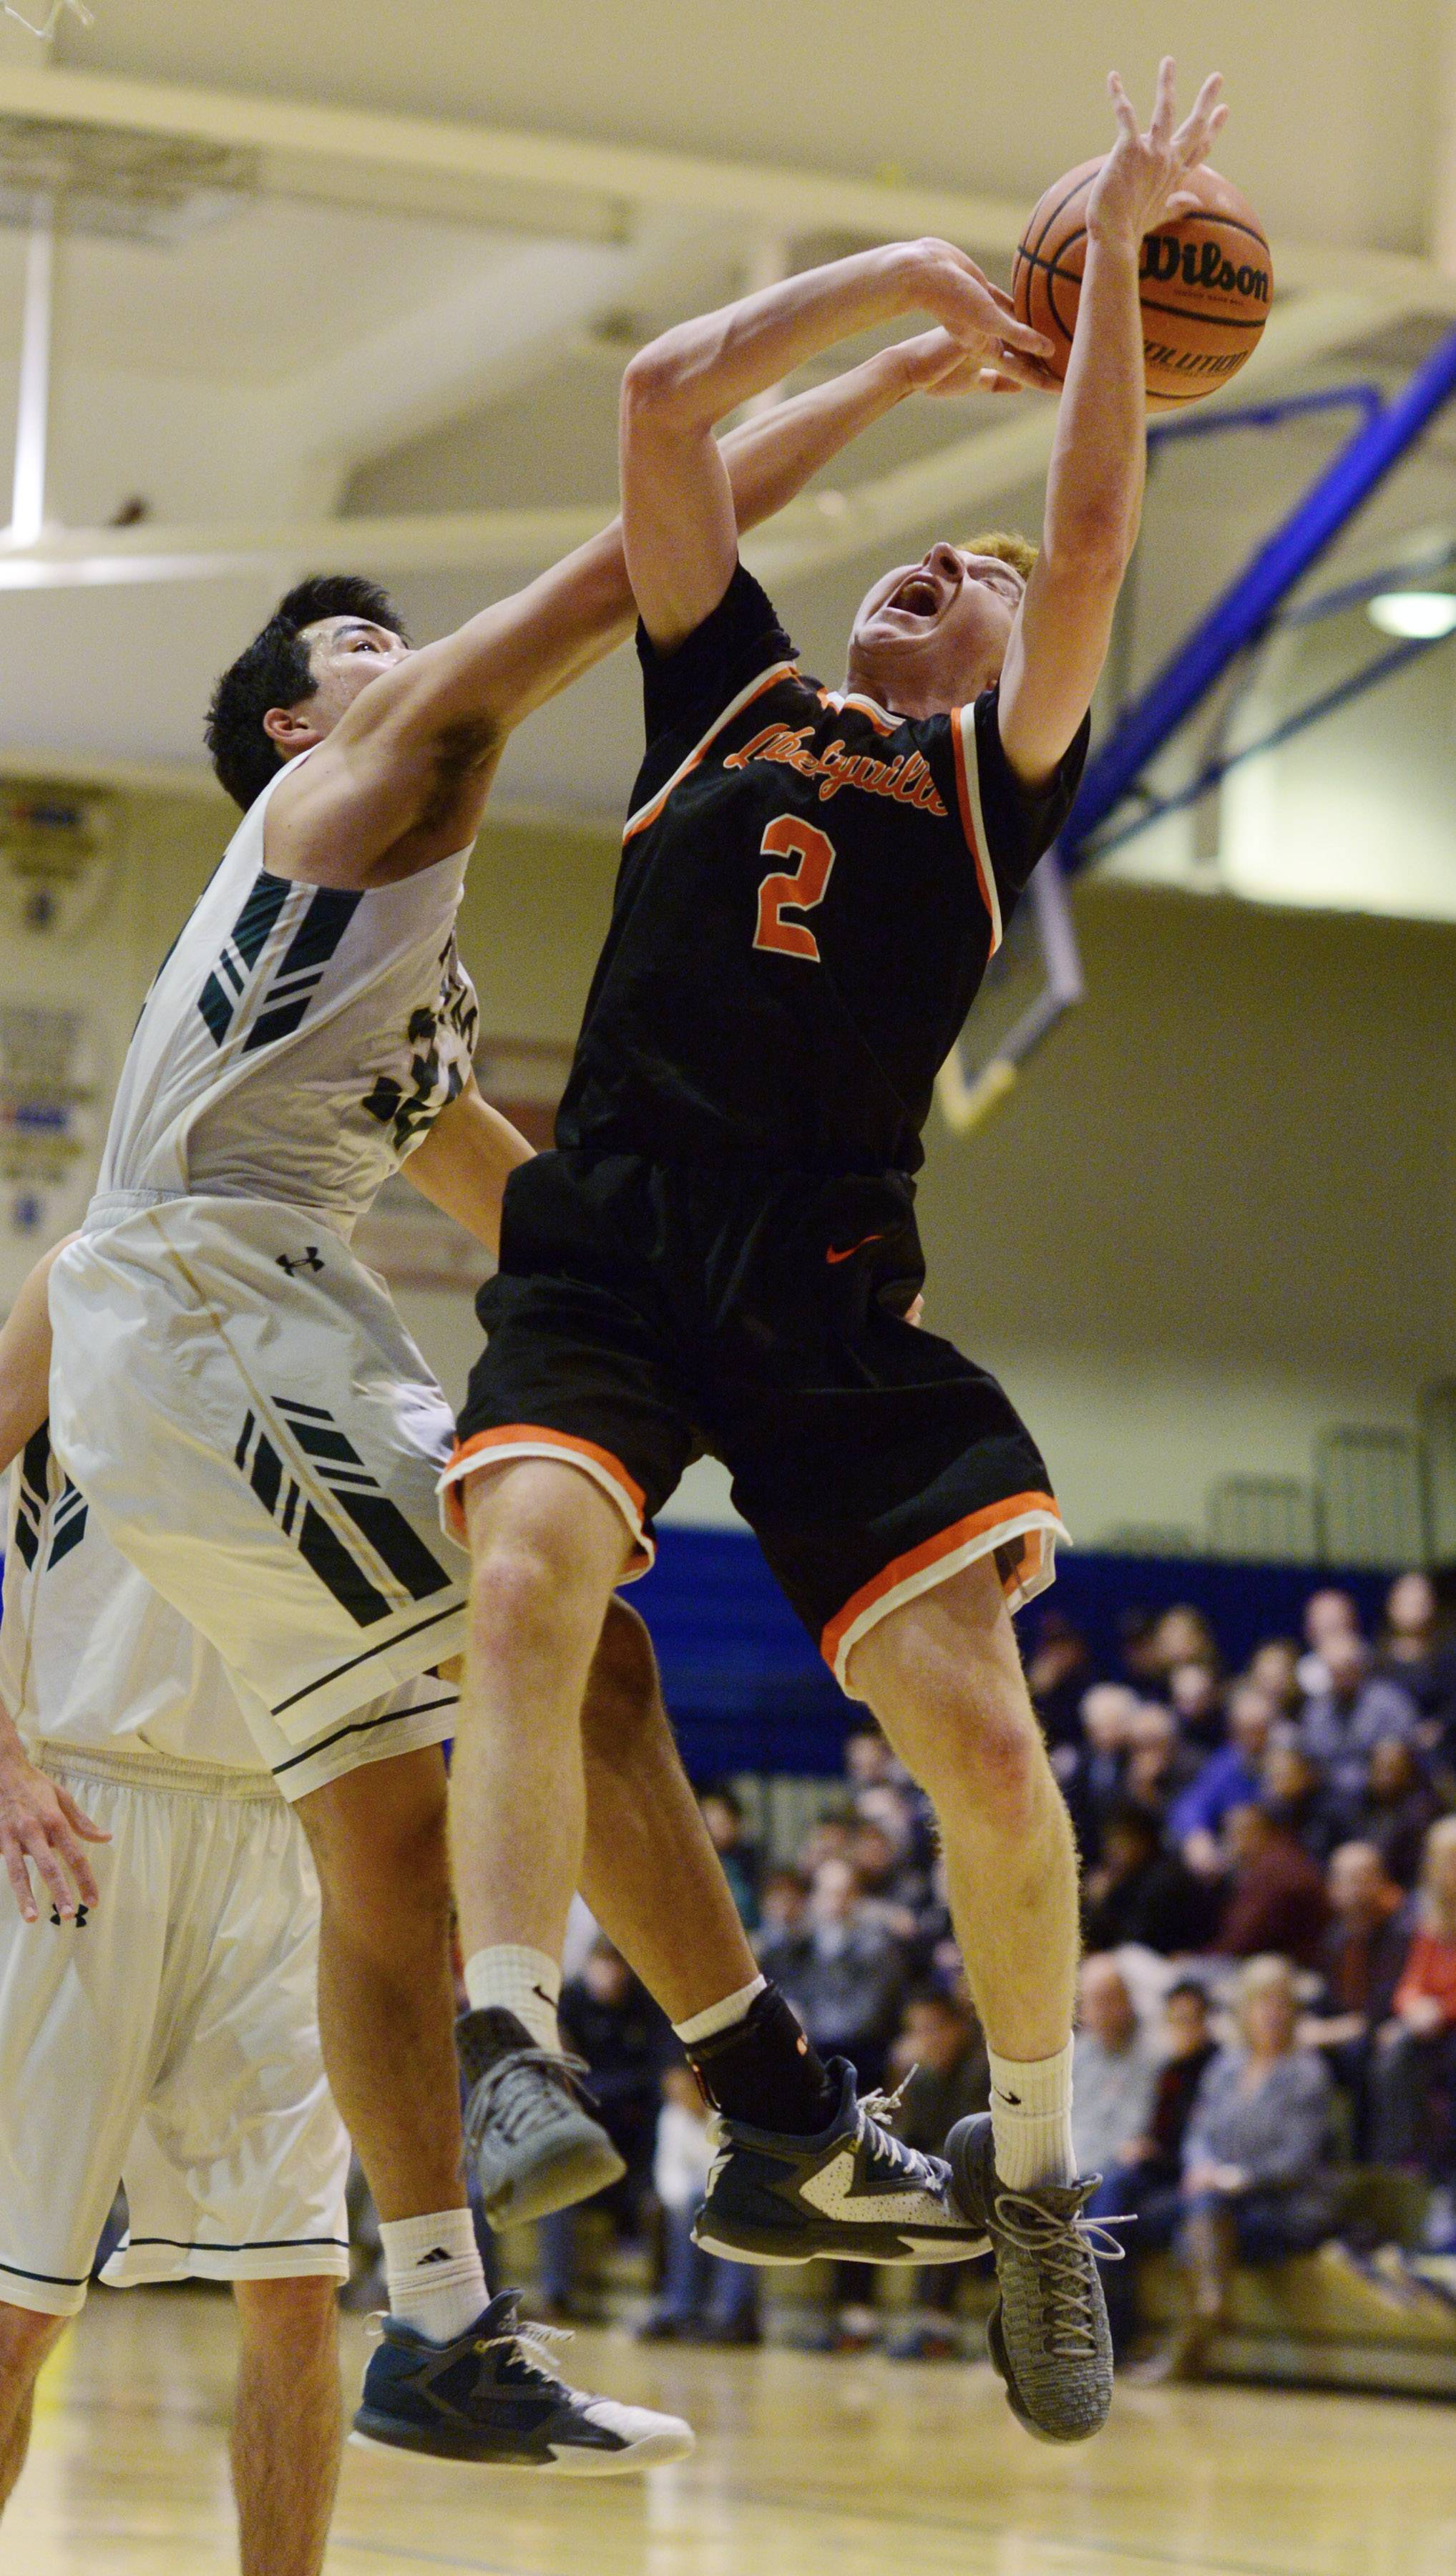 Libertyville's Ryan Wittenbrink, right, tries to get past Fremd's Ryan Martin at the basket during semifinal play in the Wheeling Hardwood Classic on Thursday.